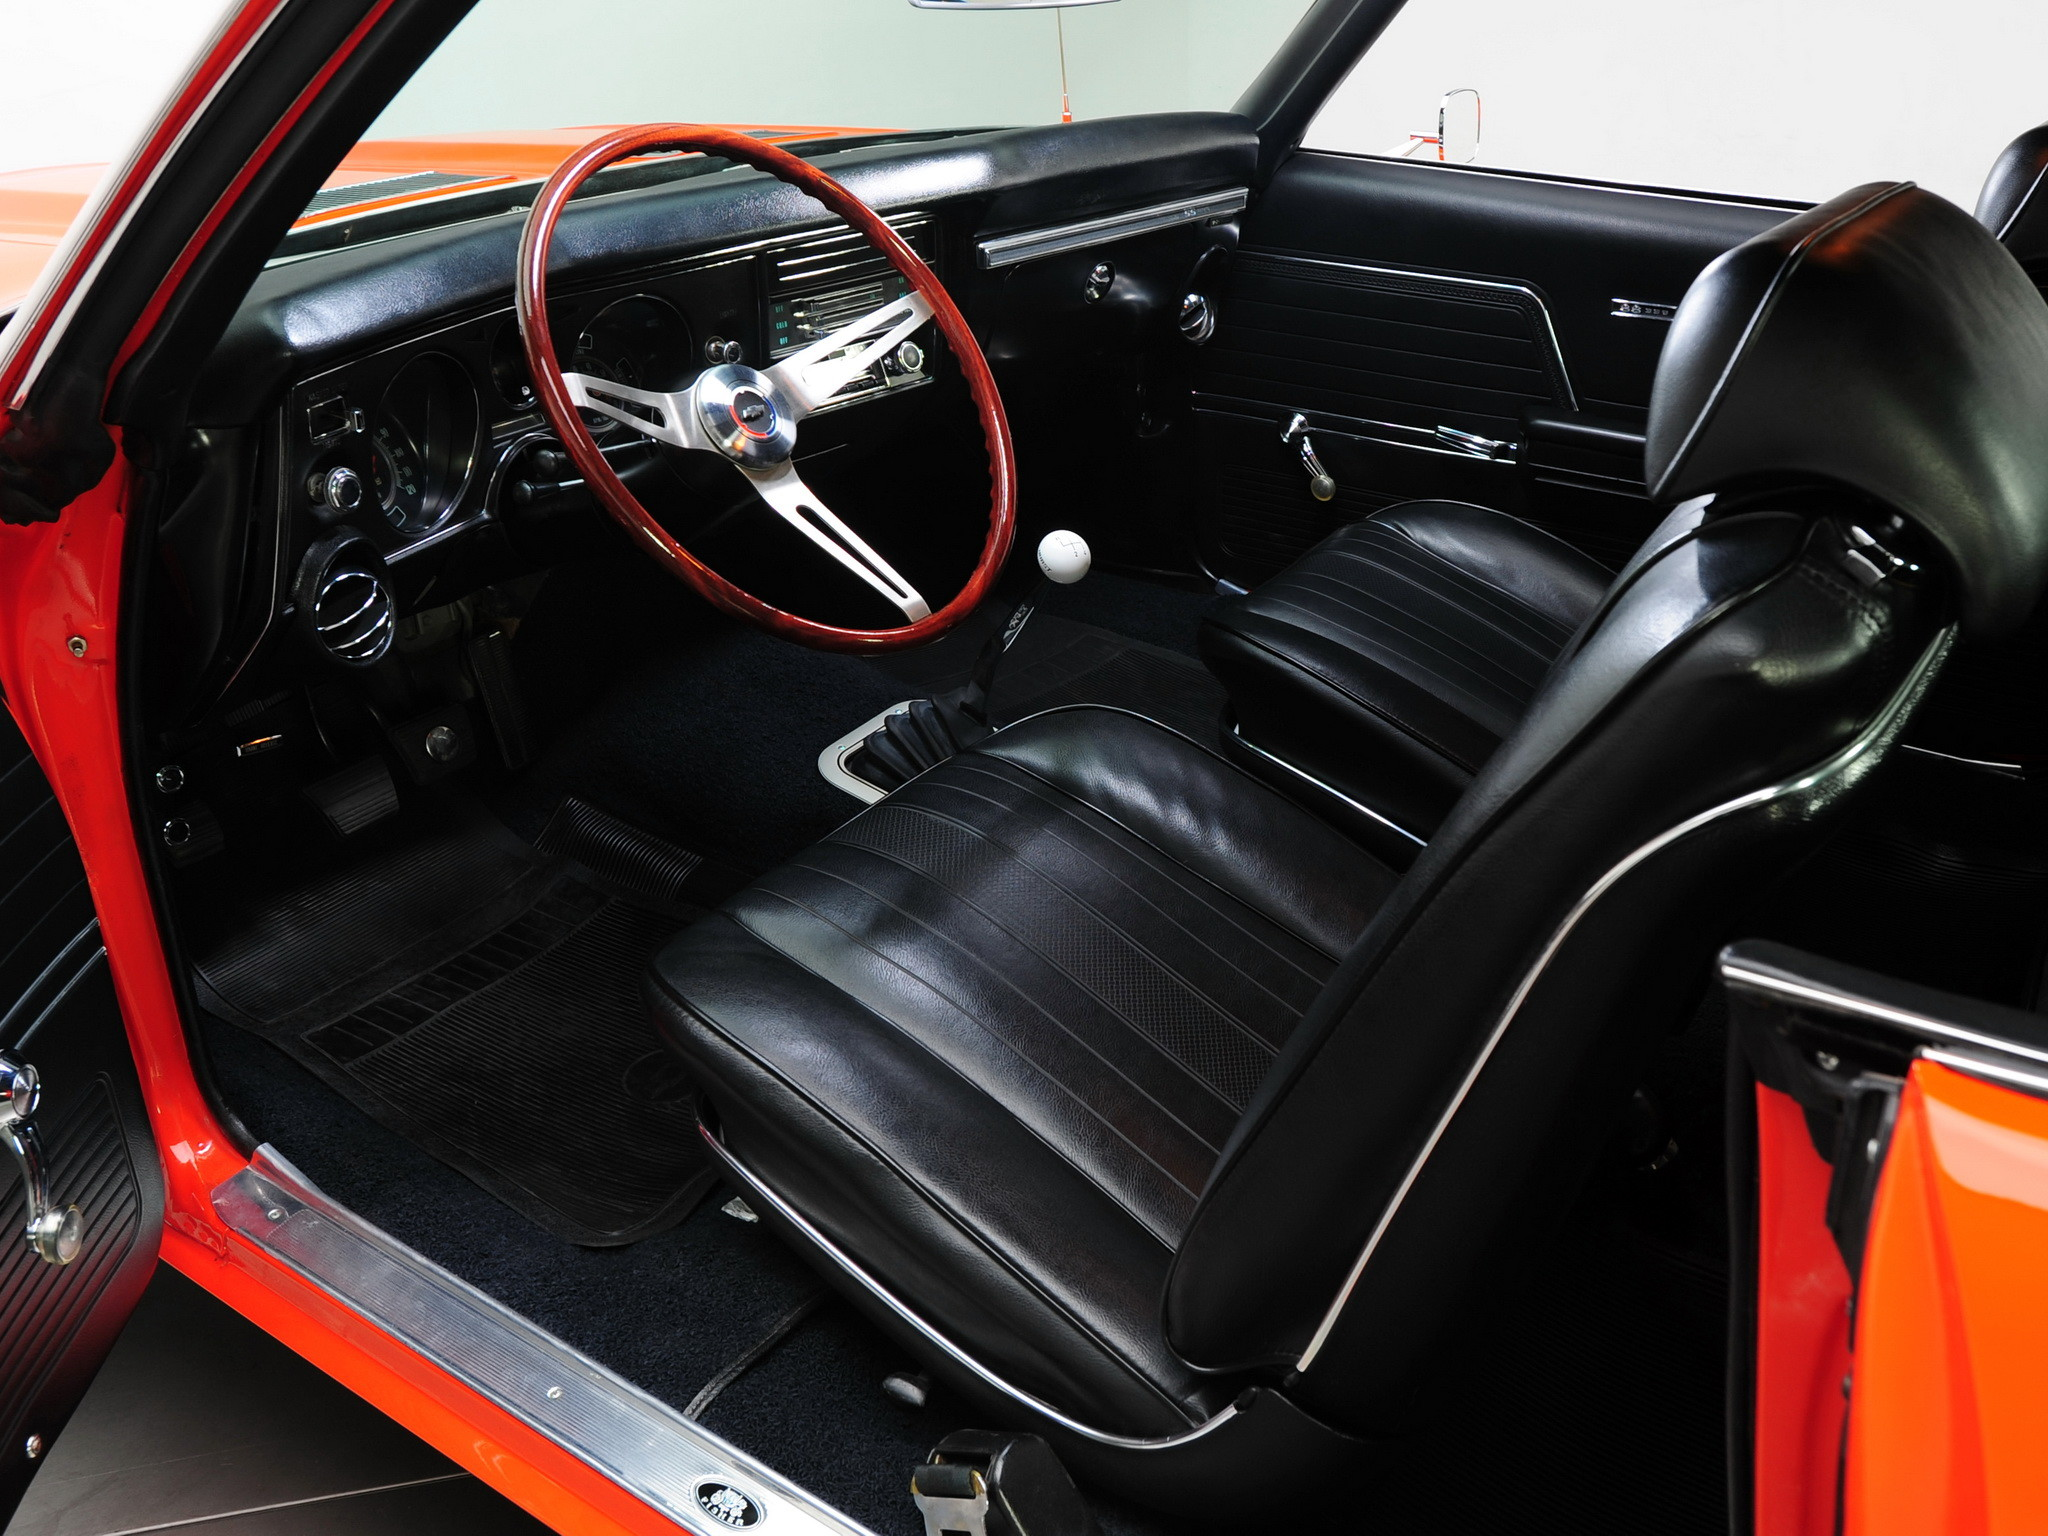 1969 Chevrolet Chevelle S-S 396 L34 Hardtop Coupe muscle classic interior  wallpaper     134841   WallpaperUP